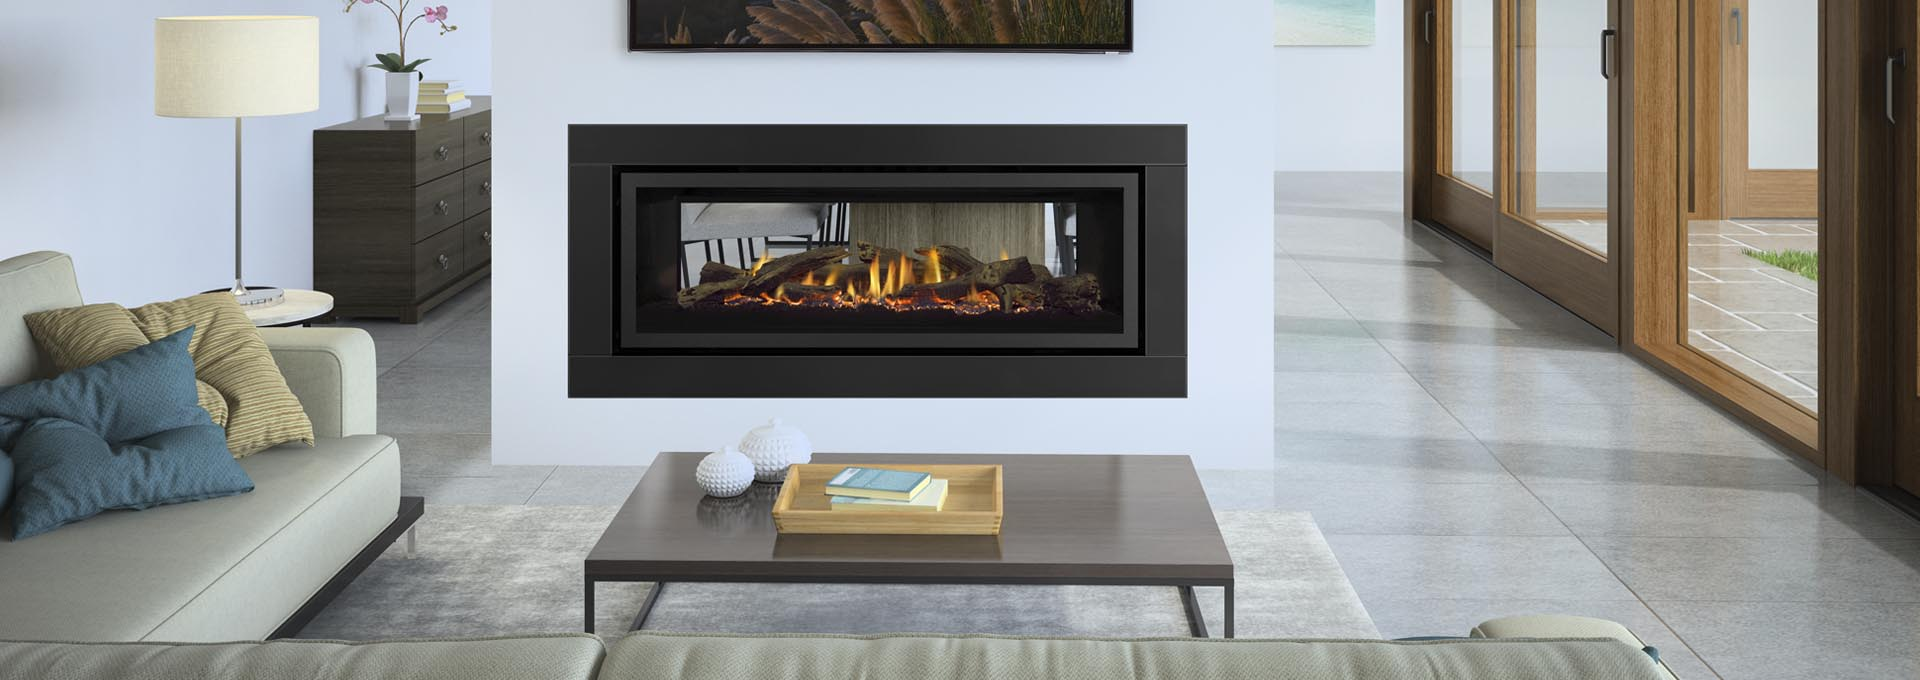 Regency Gf1500lst Gas Fireplace At Gas Log Fires Melbourne